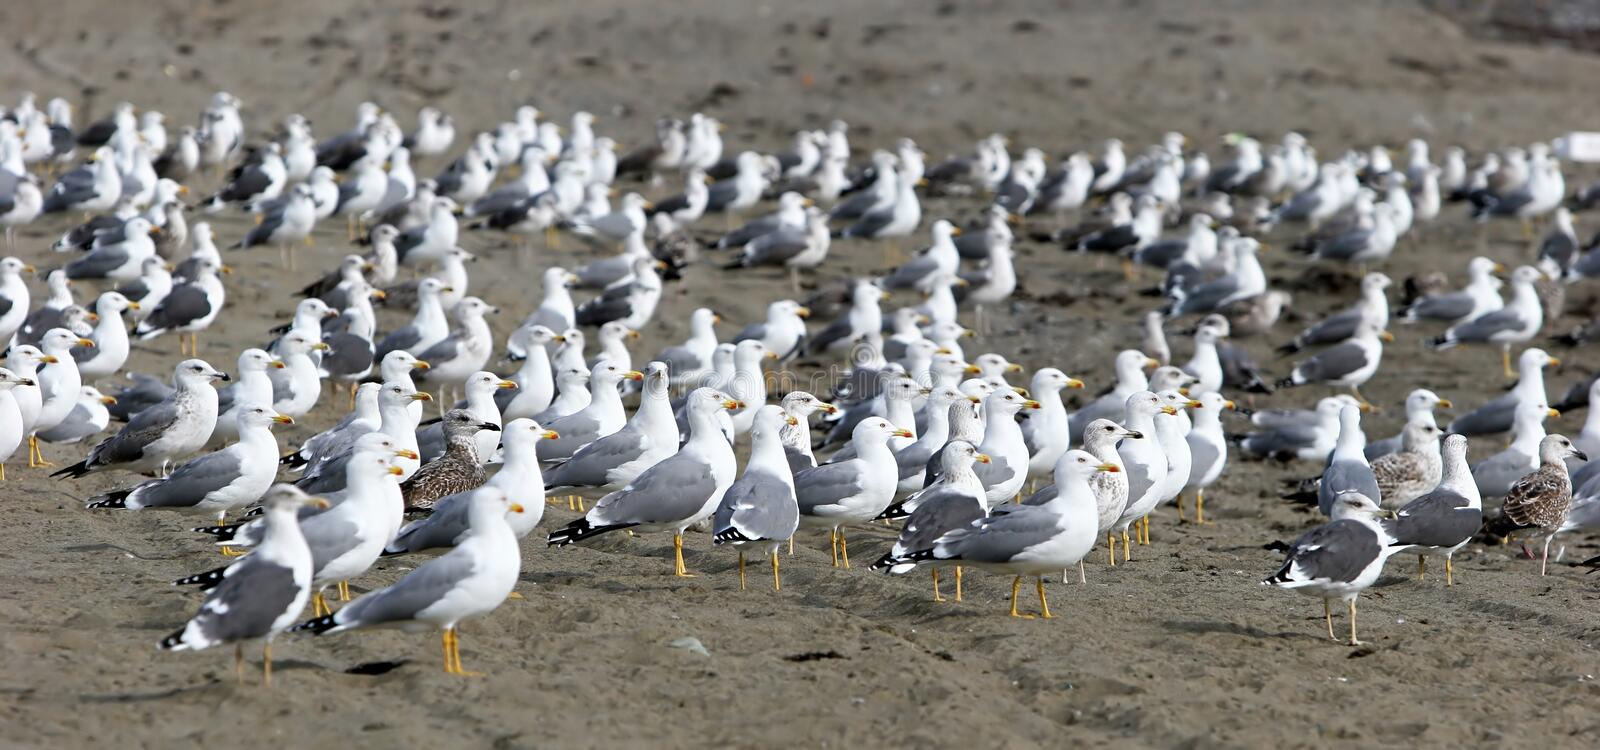 Large flock of seagulls on the beach all looking in the same direction except for one in the center. Large flock of seagulls on a sandy beach all looking in the stock photo